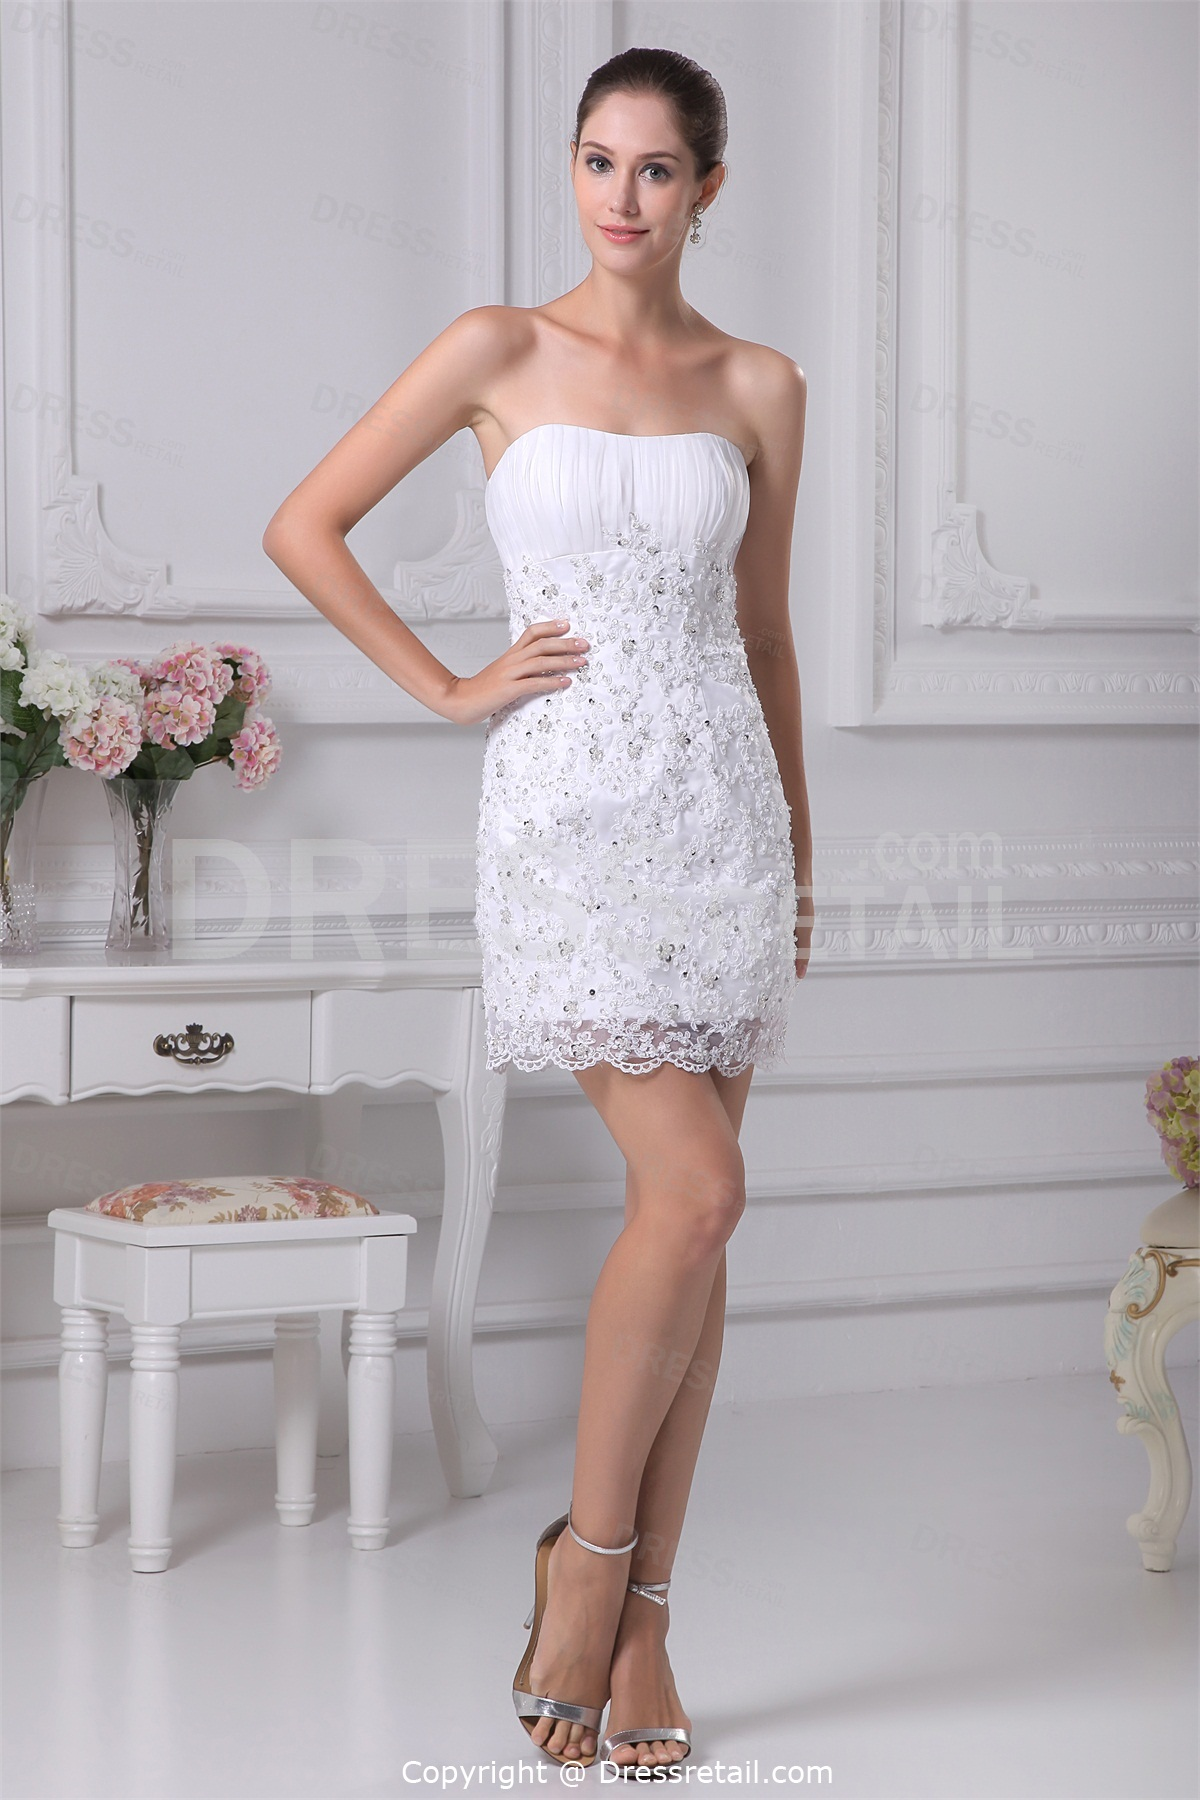 Looking classical and fashionable with lace summer wedding dresses lace summer wedding dresses in short style junglespirit Images